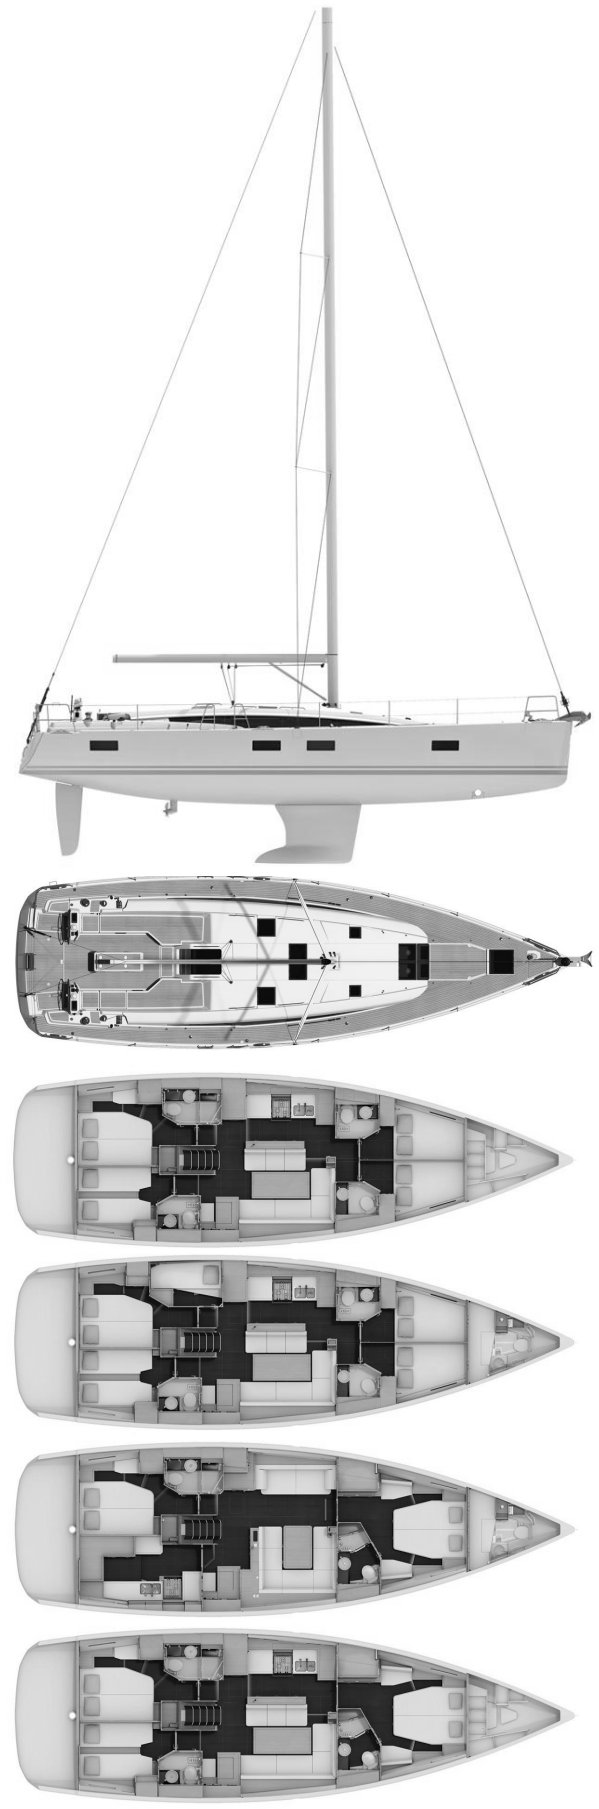 JEANNEAU 54 drawing